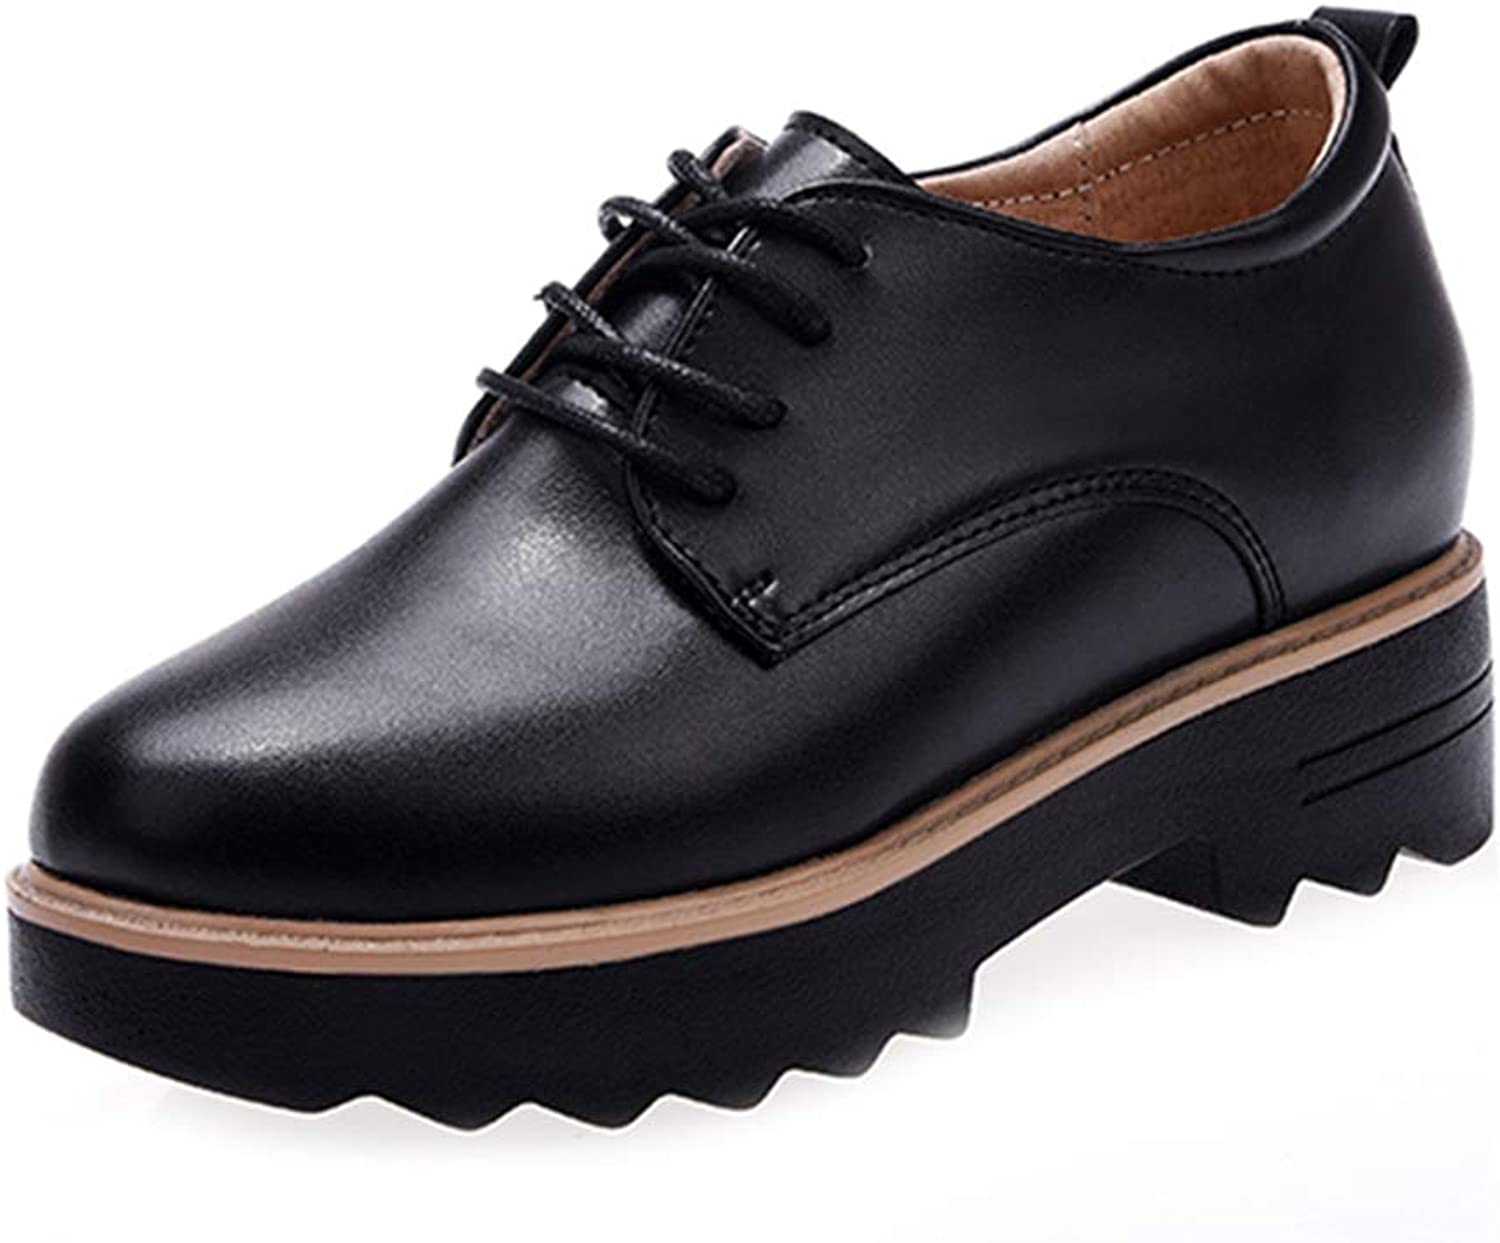 GIY Women's Platform Wedge Oxford shoes Wingtip Lace Up Chunky Heel Casual Dress Oxfords Brogues Black